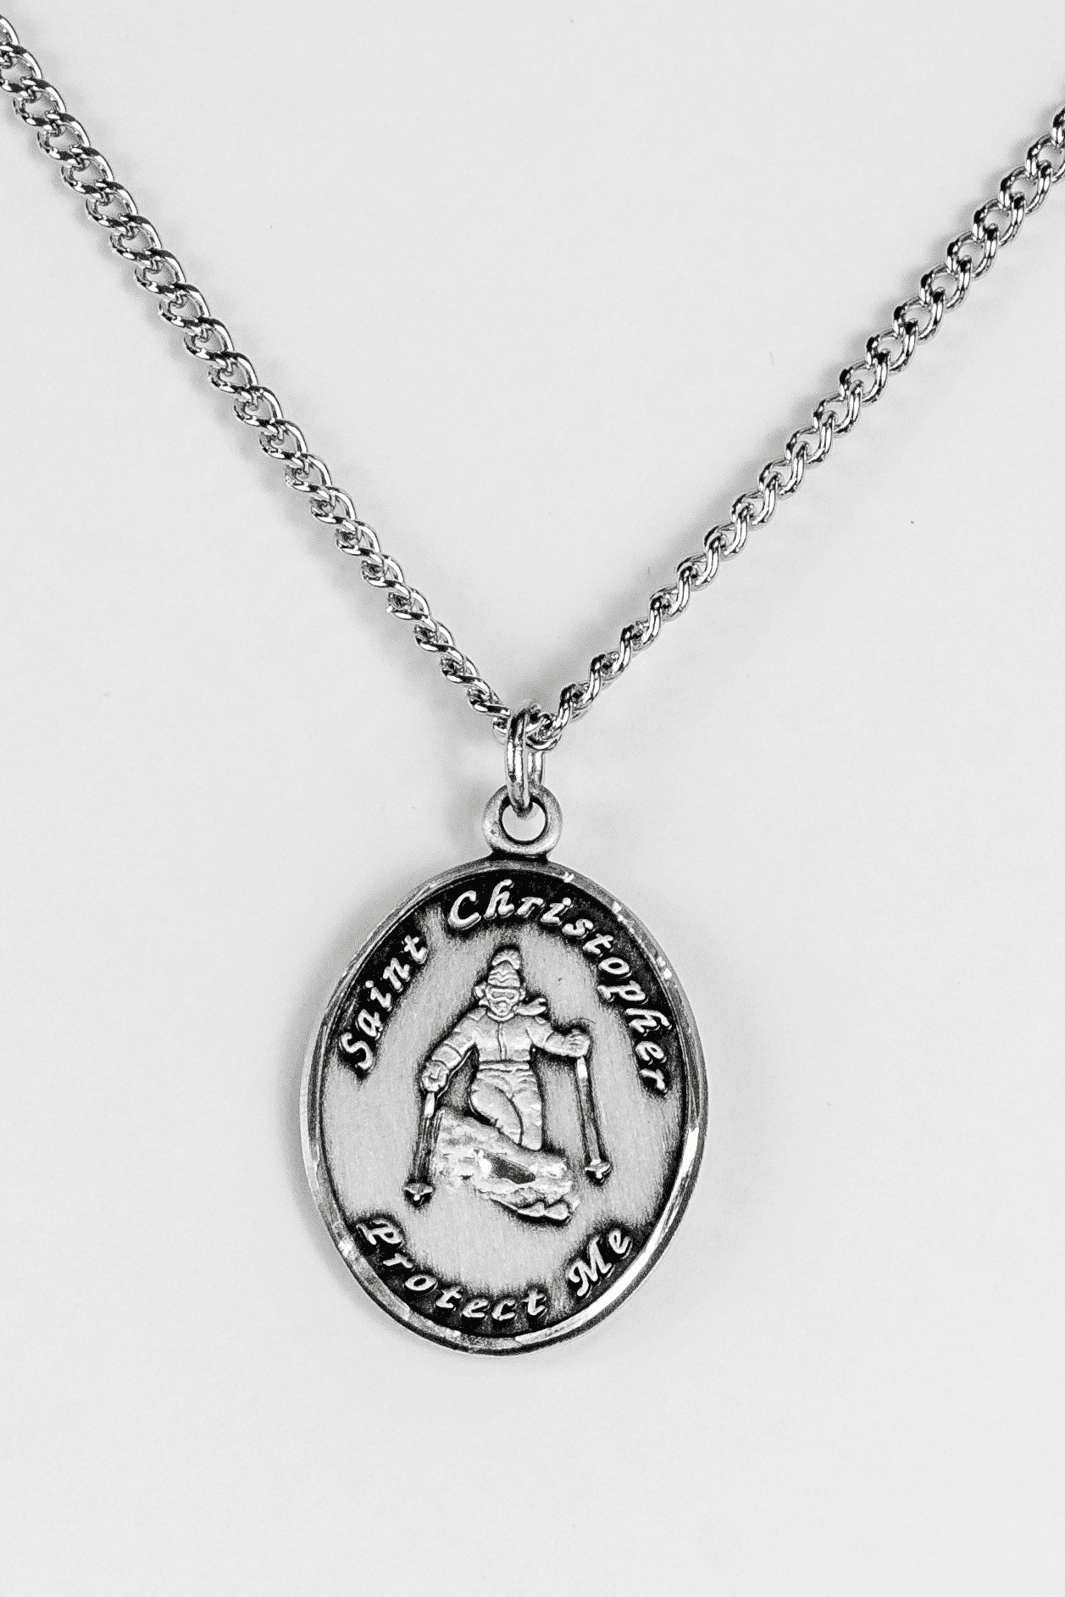 St. Christopher Ladies Skiing Necklace